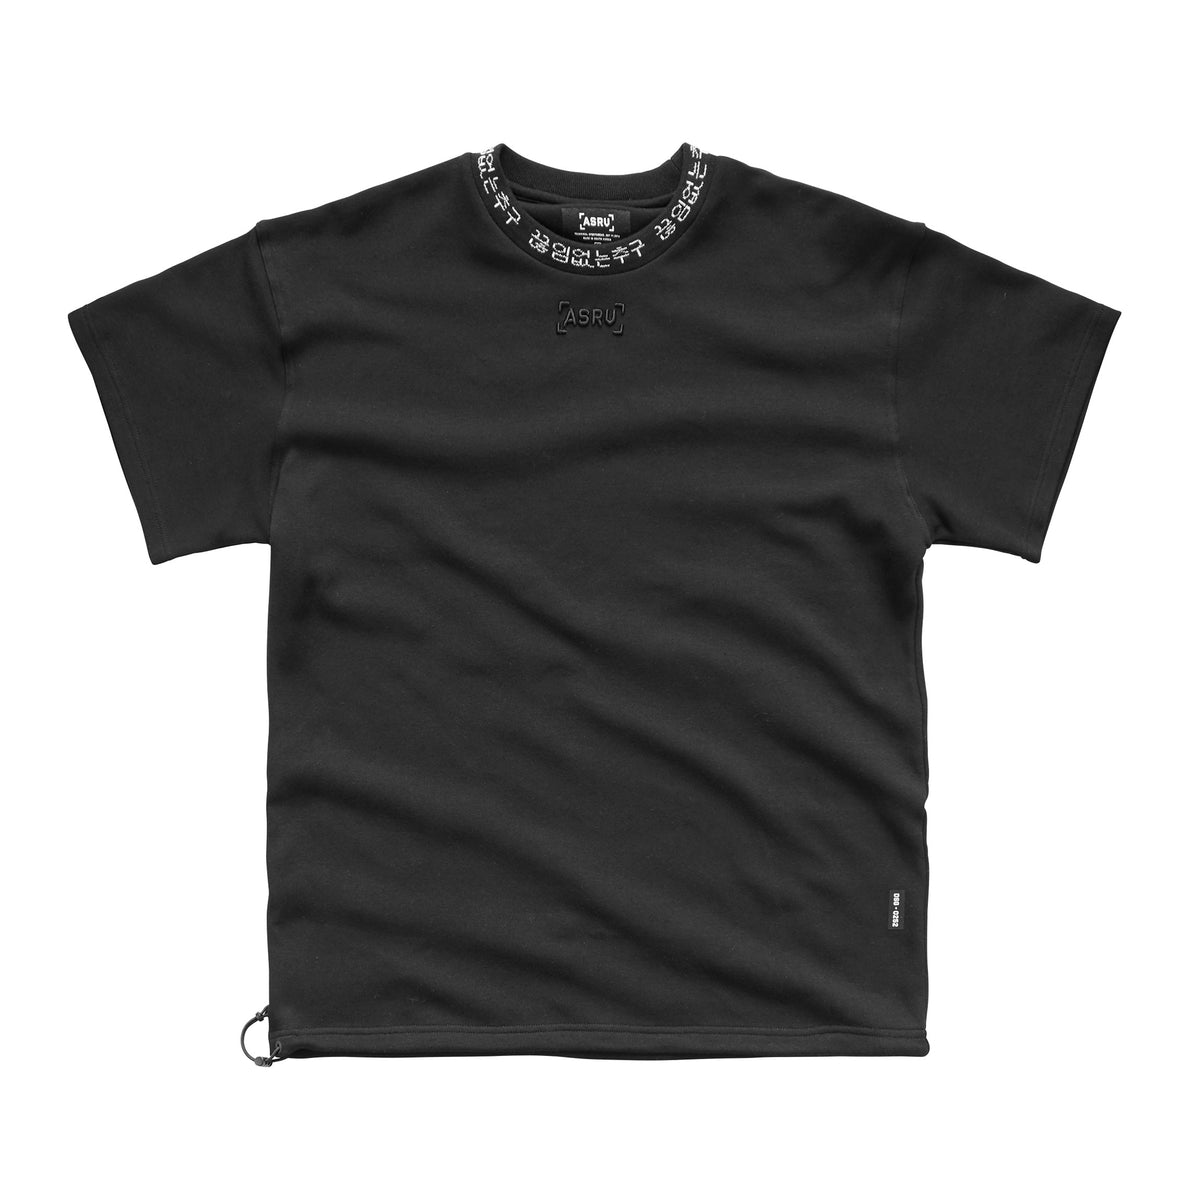 0252. SilverPlus® Technical Cinch Tee - Black